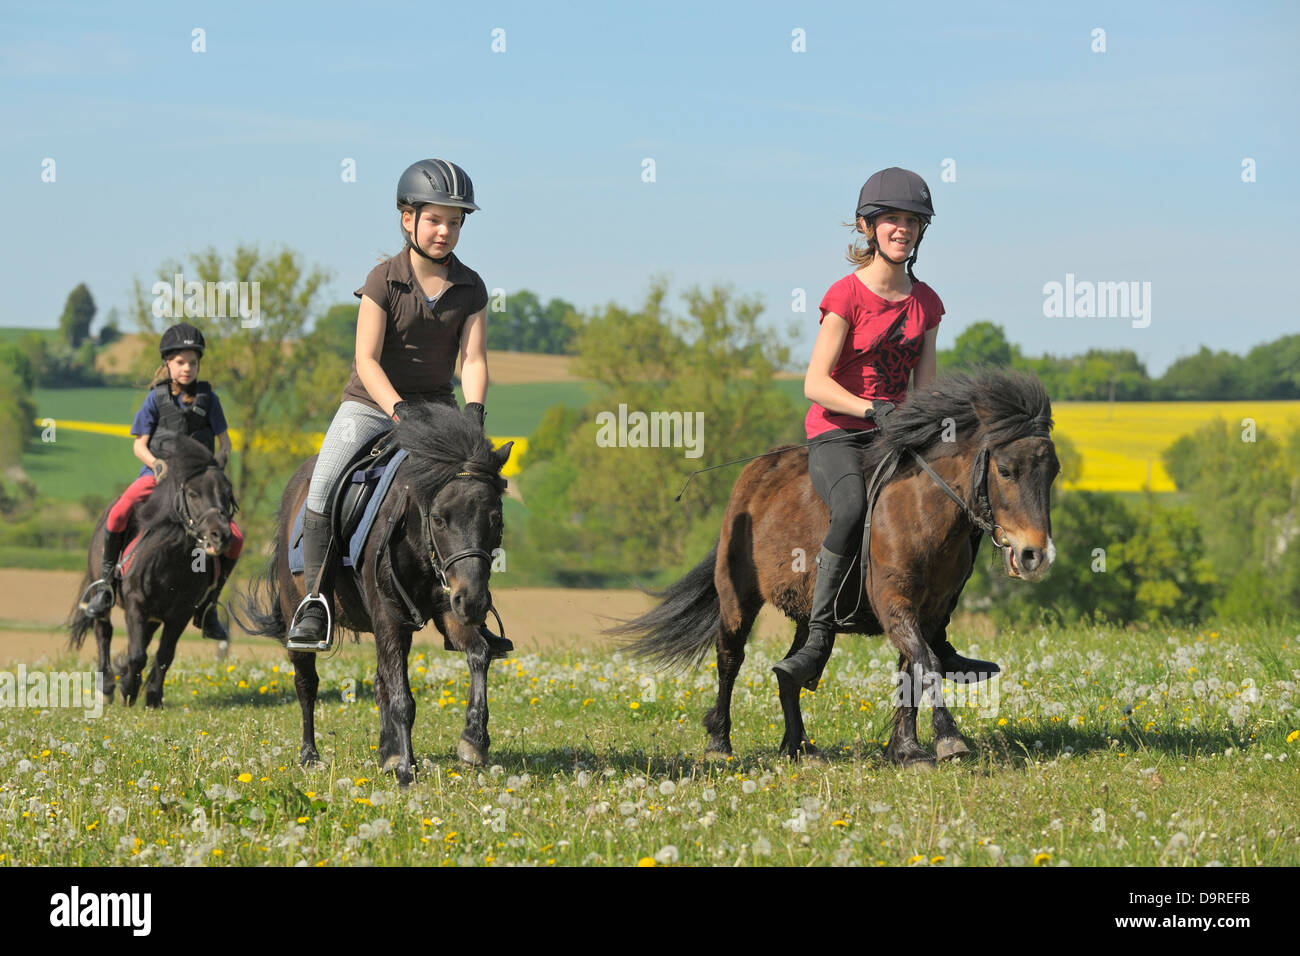 Three girls on Shetland Ponies galloping in a meadow - Stock Image